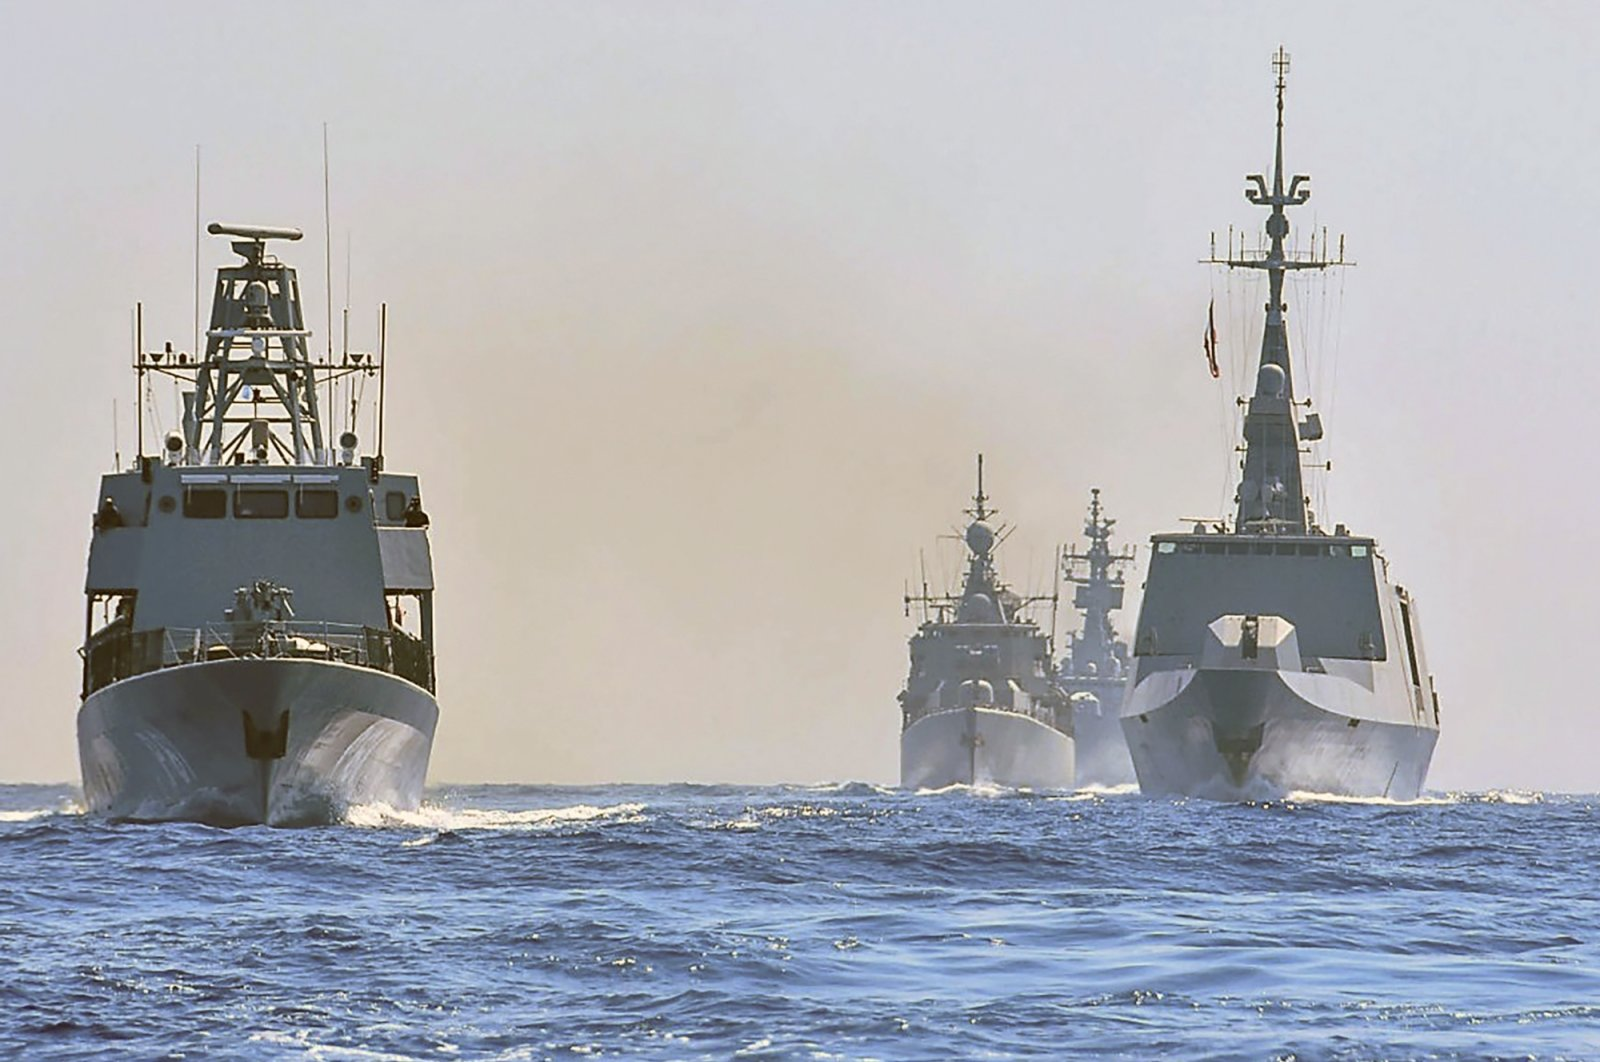 Warships from Greece, Italy, Greek Cypriot administration and France participate in a joint military exercise which was held from Aug. 26-28, south of Turkey in the Eastern Mediterranean, Aug. 31, 2020. (AP Photo)